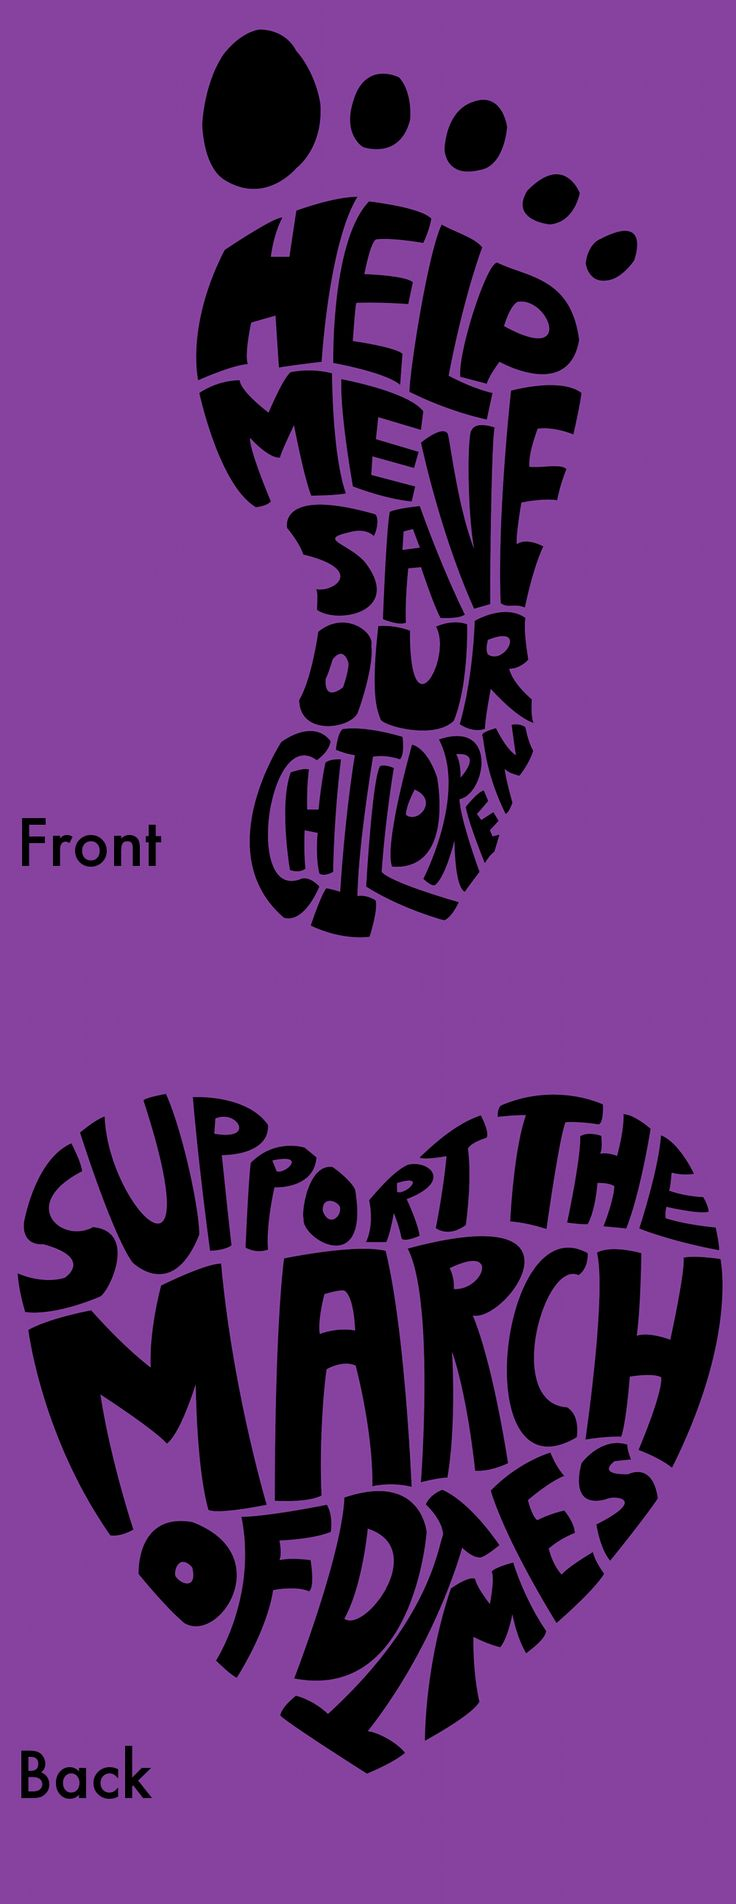 March of Dimes Shirt by Jade-Xe.deviantart.com on @deviantART